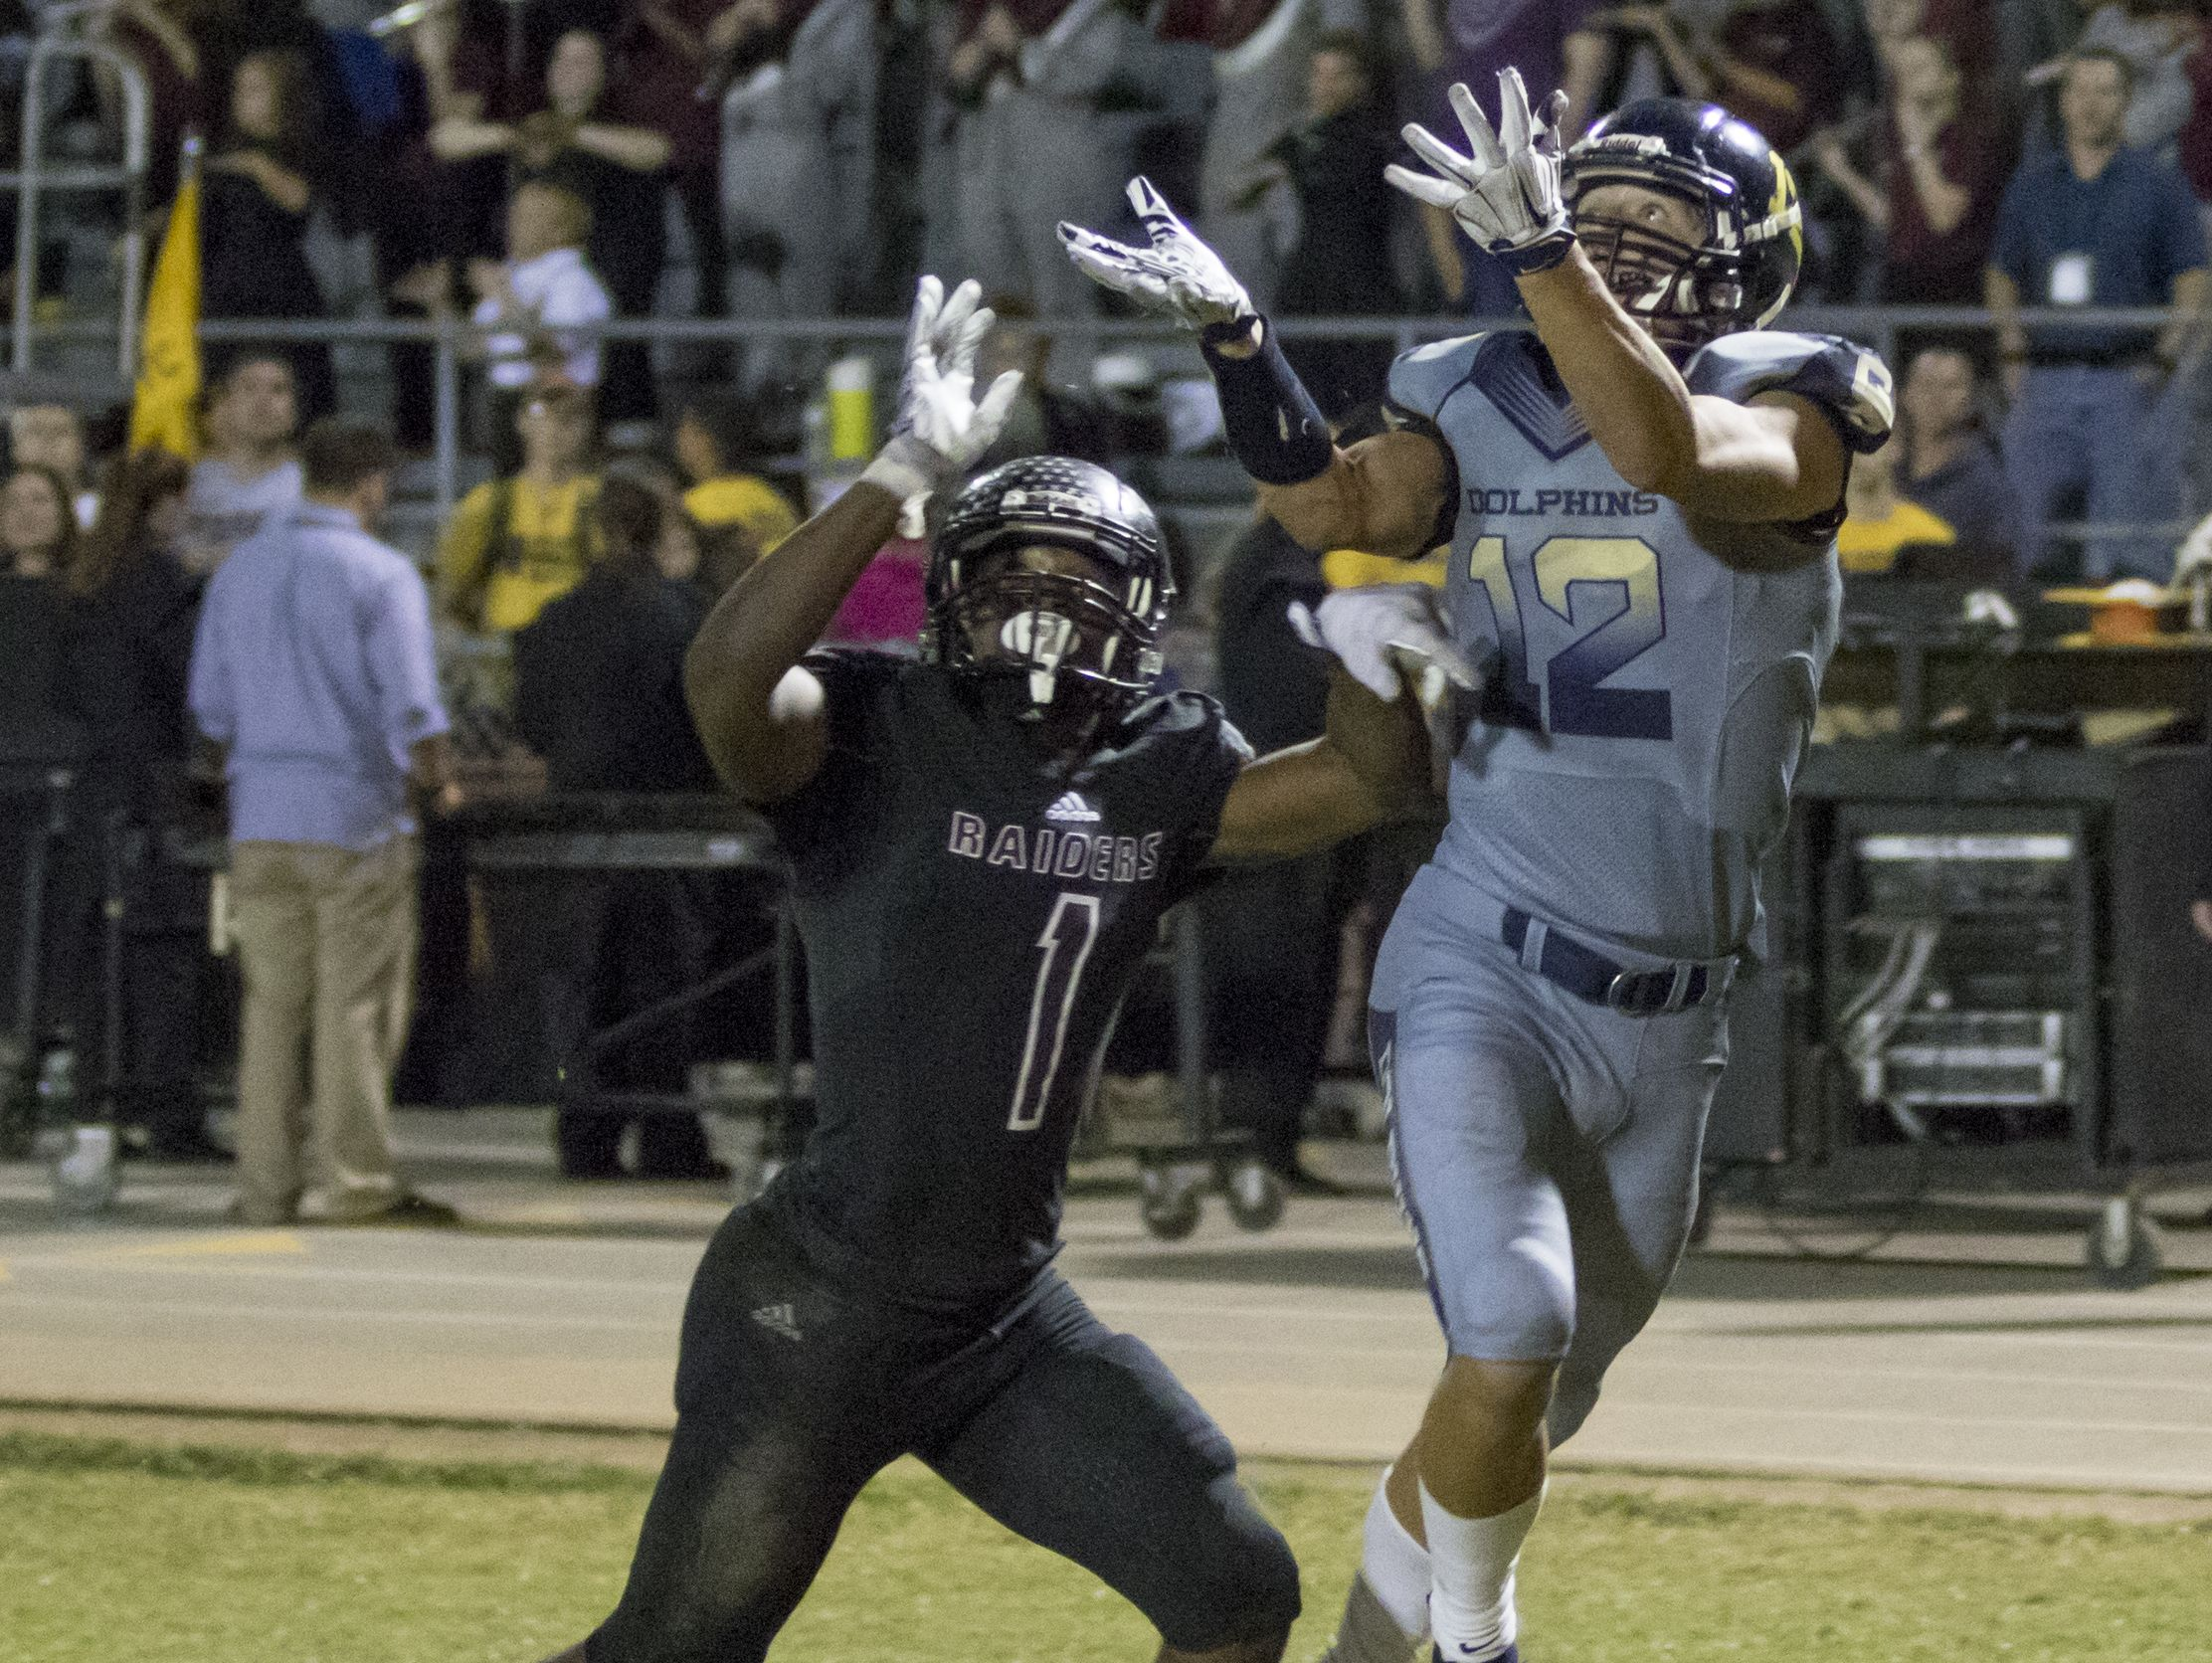 Cole Sheppard (12) catches the ball for a touchdown during the Gulf Breeze vs Navarre football at Navarre High School on Friday, October 8, 2016.